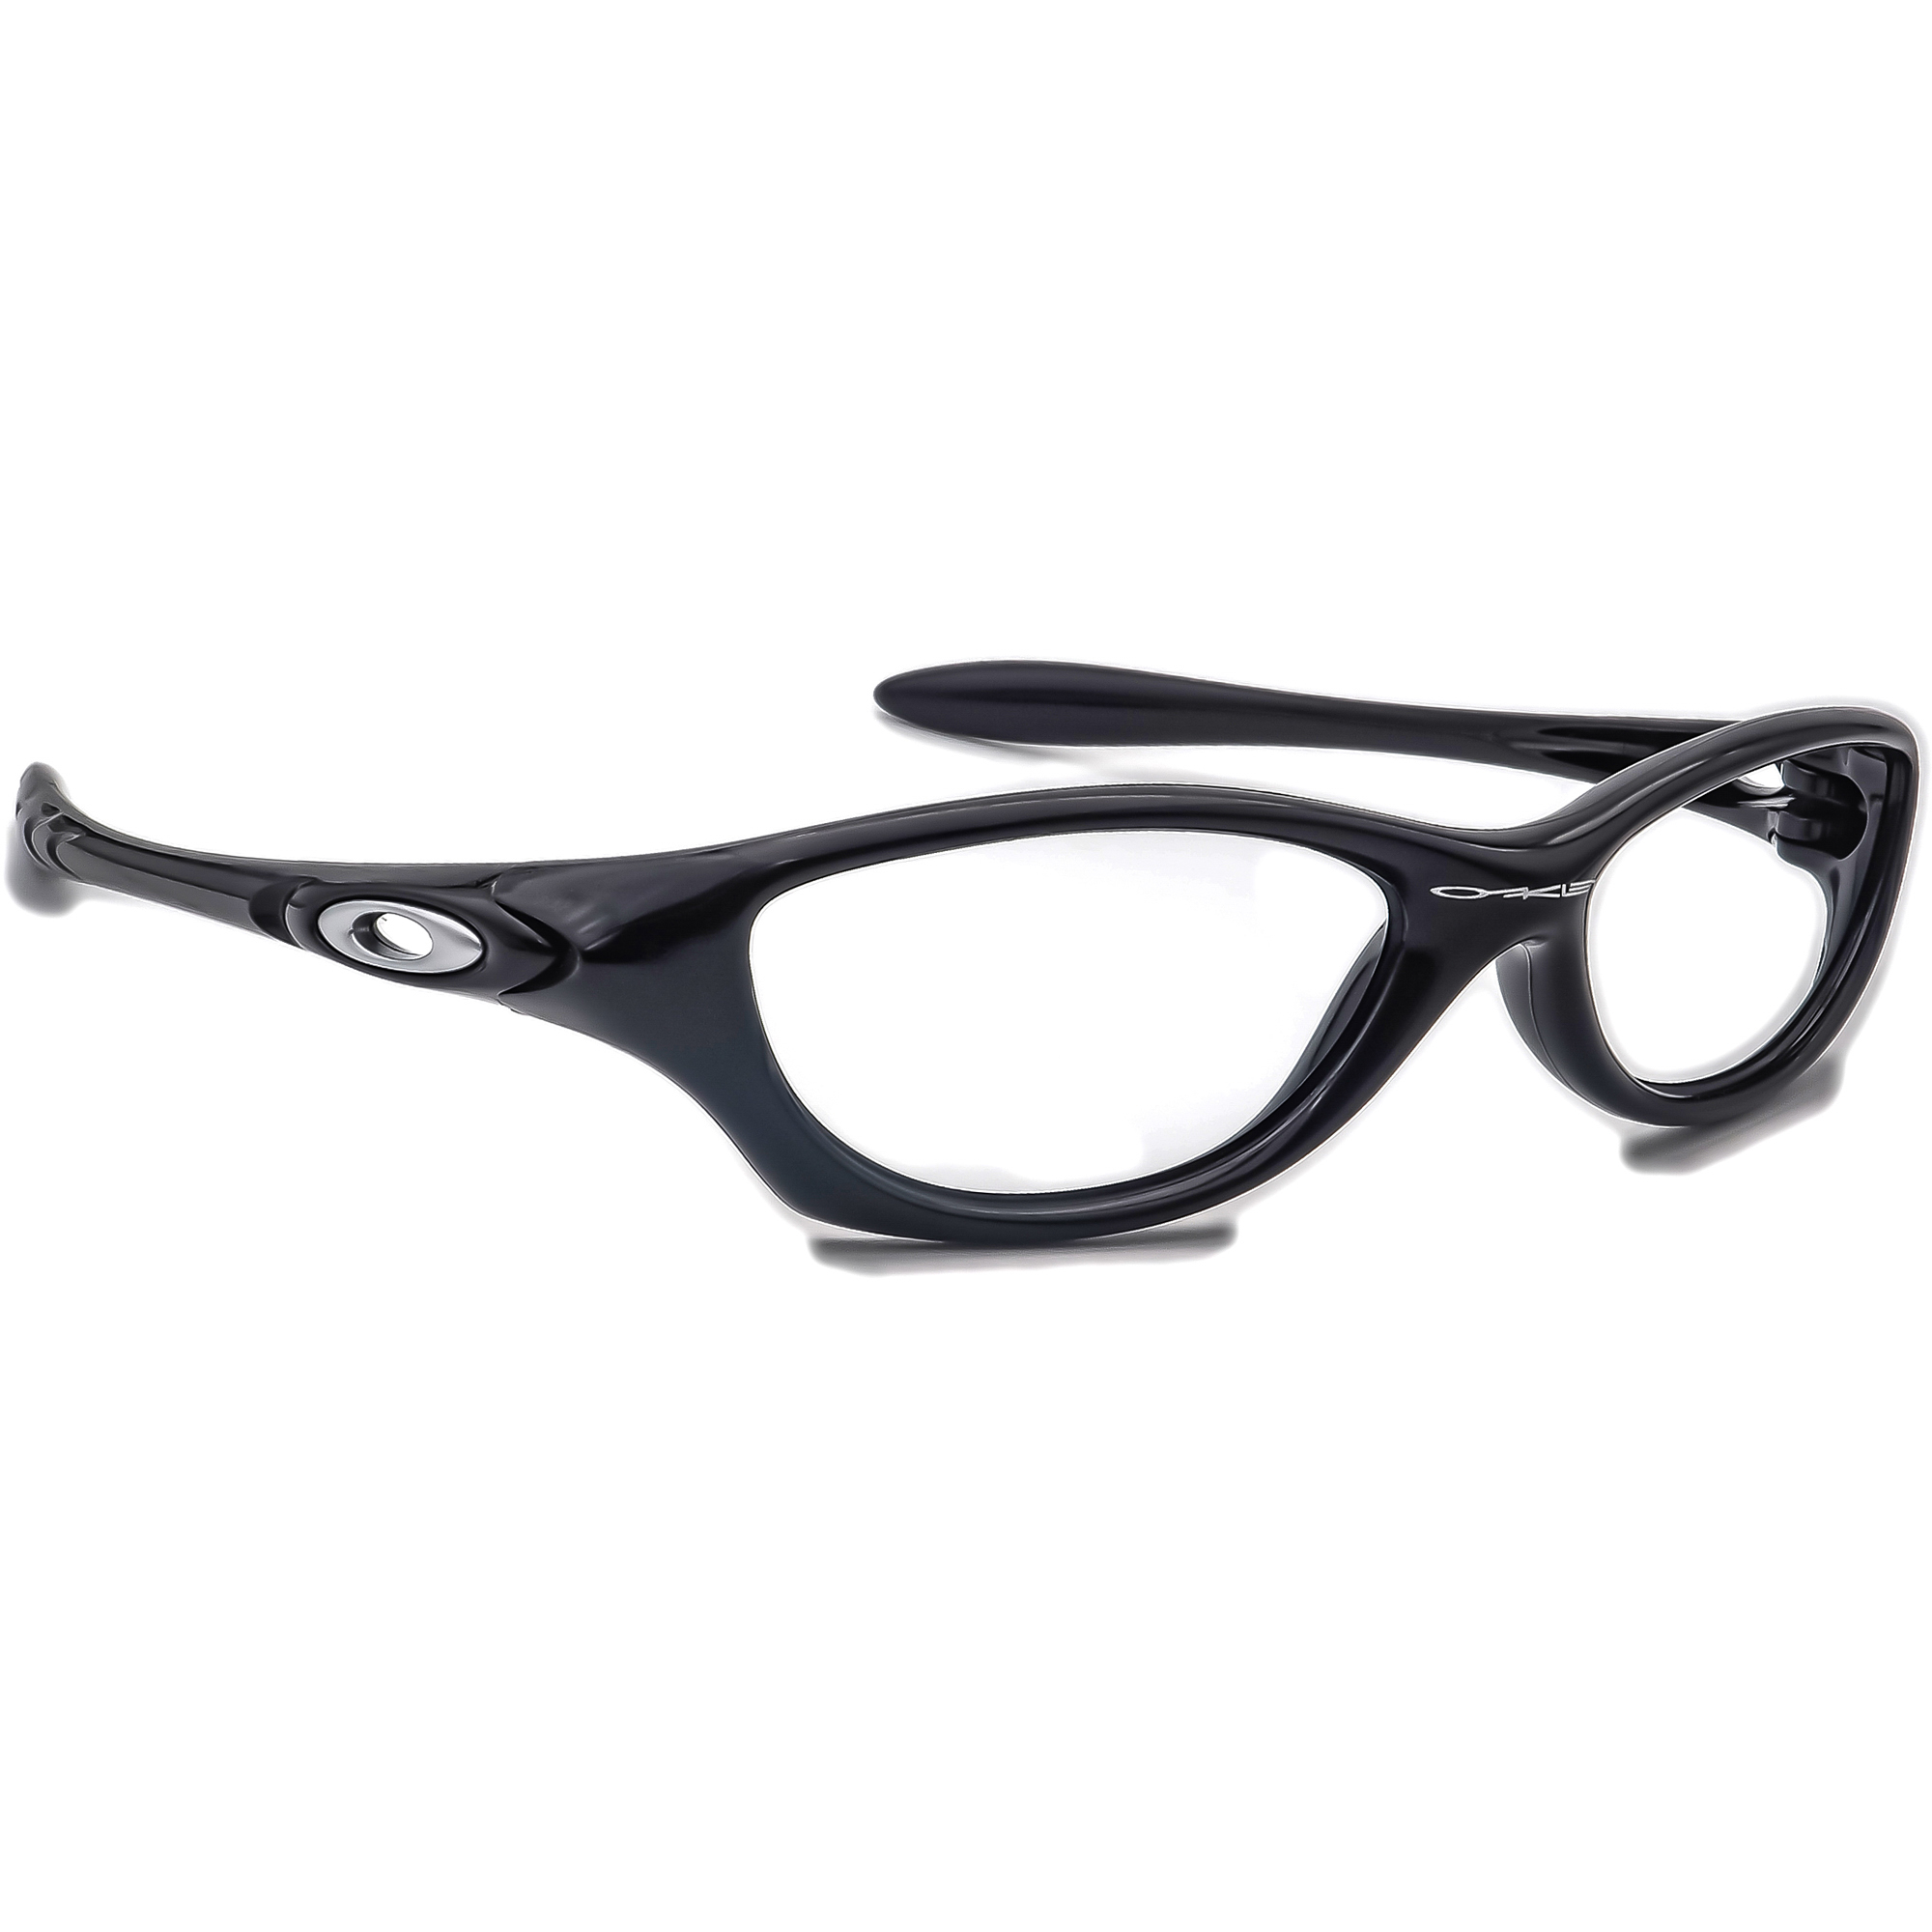 Oakley Fate Sunglasses Frame Only